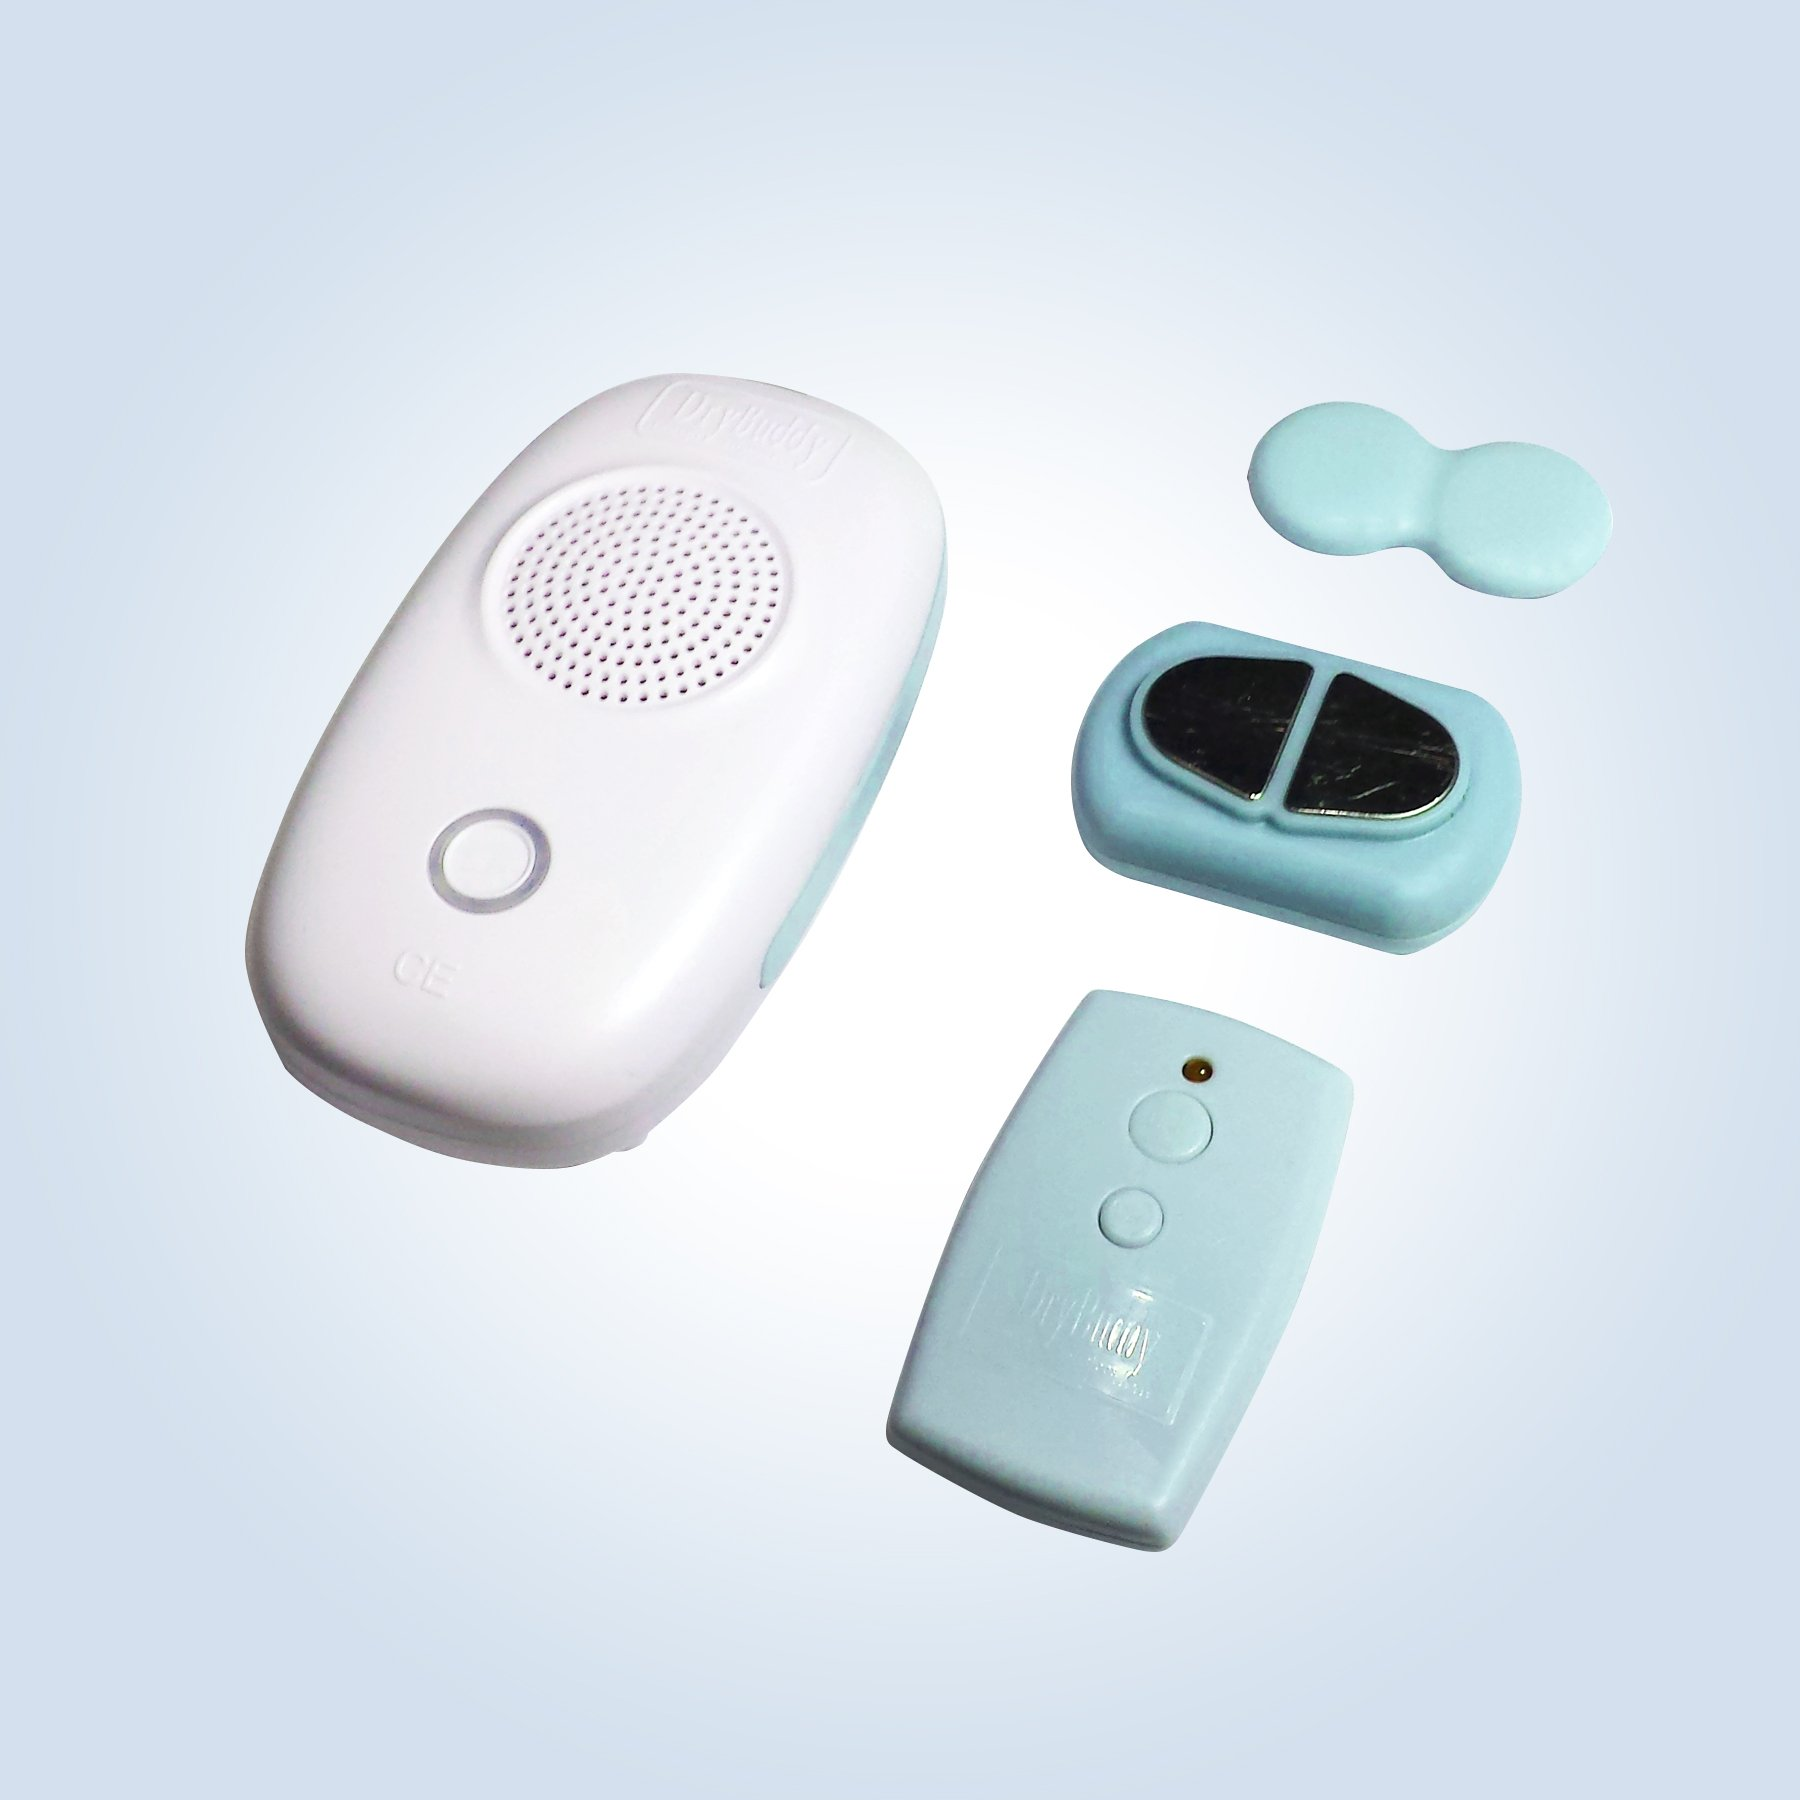 DryBuddyFLEX 3 New 3rd Gen. Long-Range True Wireless Bedwetting Alarm System. Magnetic Sensor & Remote. Extremely Convenient, Easy-to-Use, Feature-Rich, Customizable. Specials Needs Friendly.